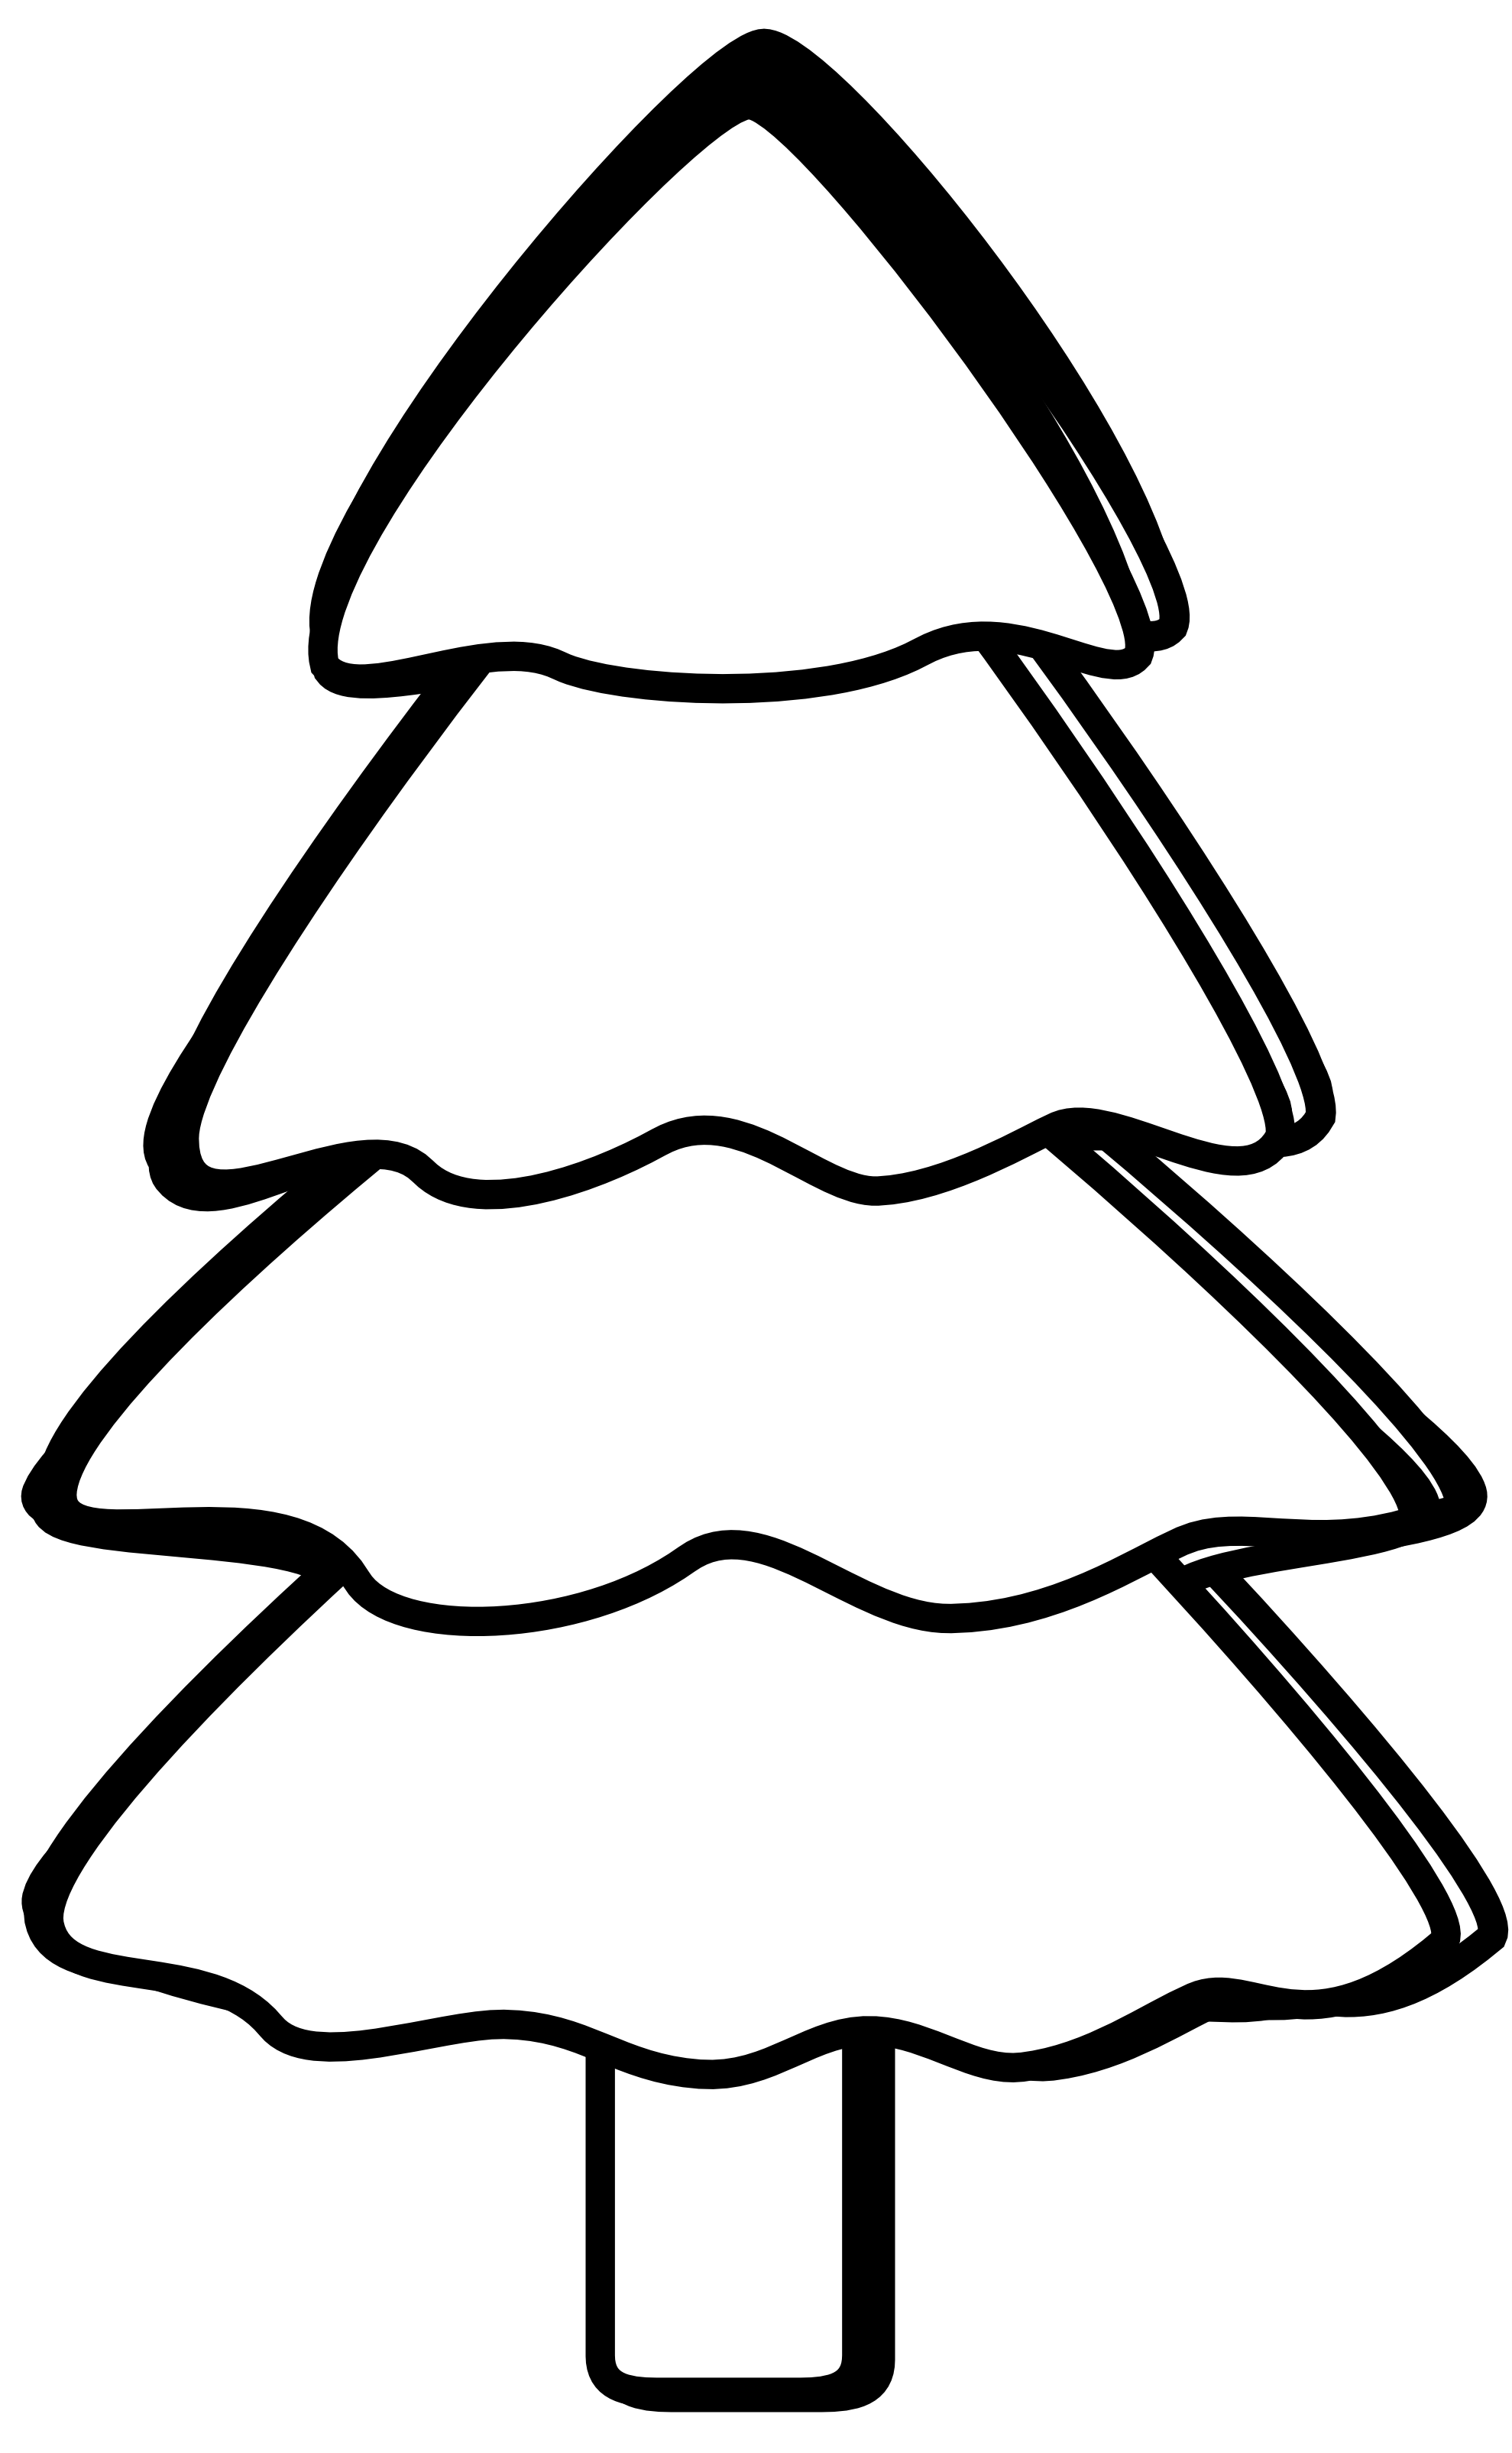 black and white tree clipart - Tree Clip Art Black And White